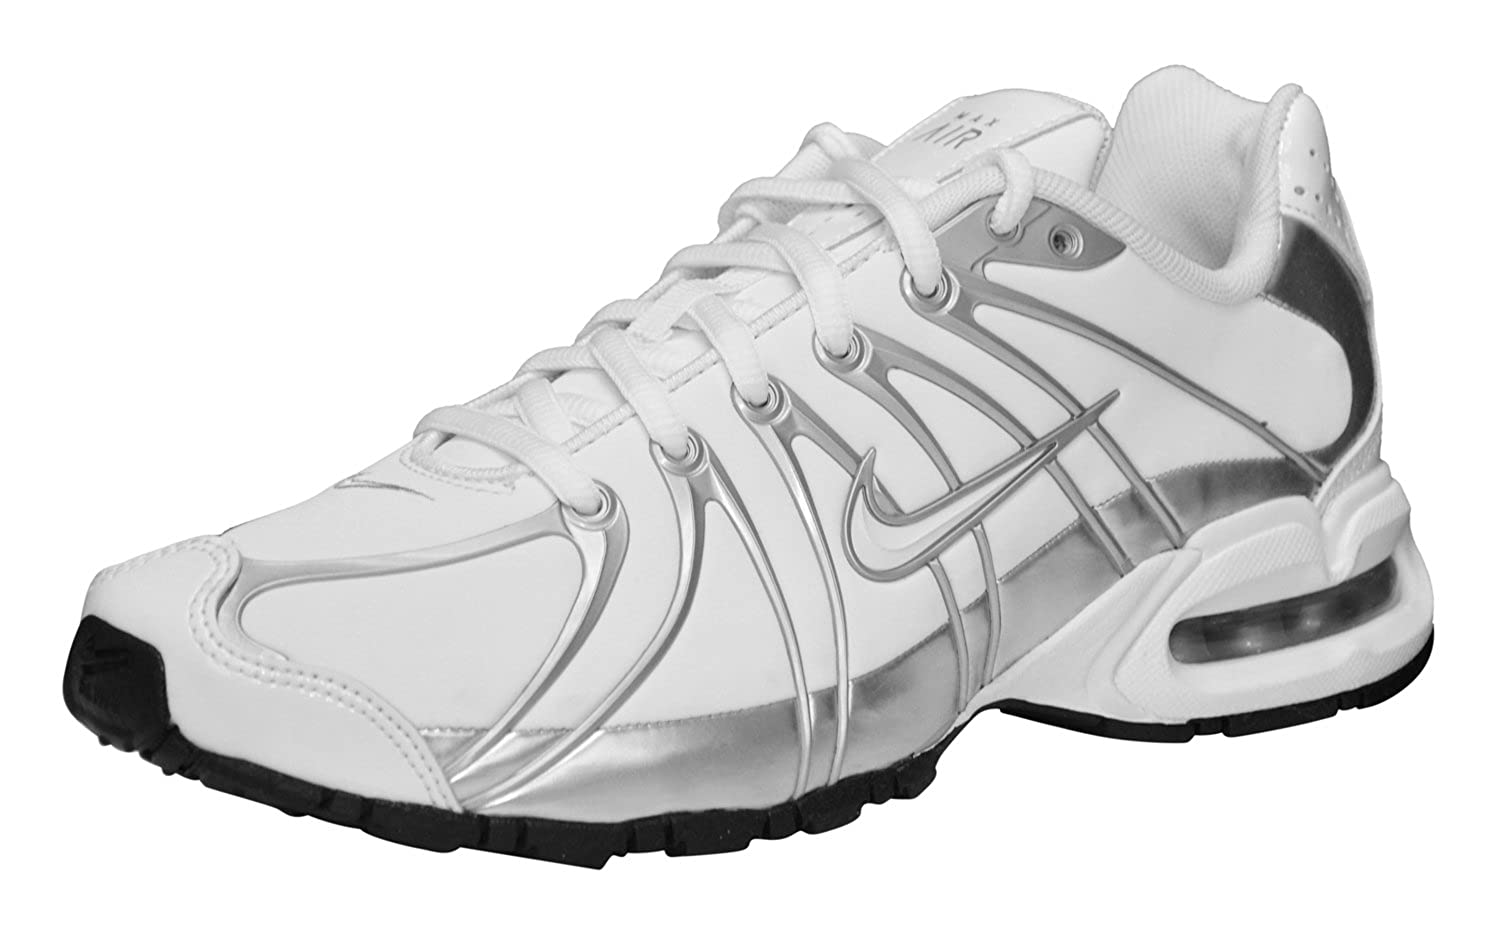 Nike Womens Air Max Torch Sl Running Shoe